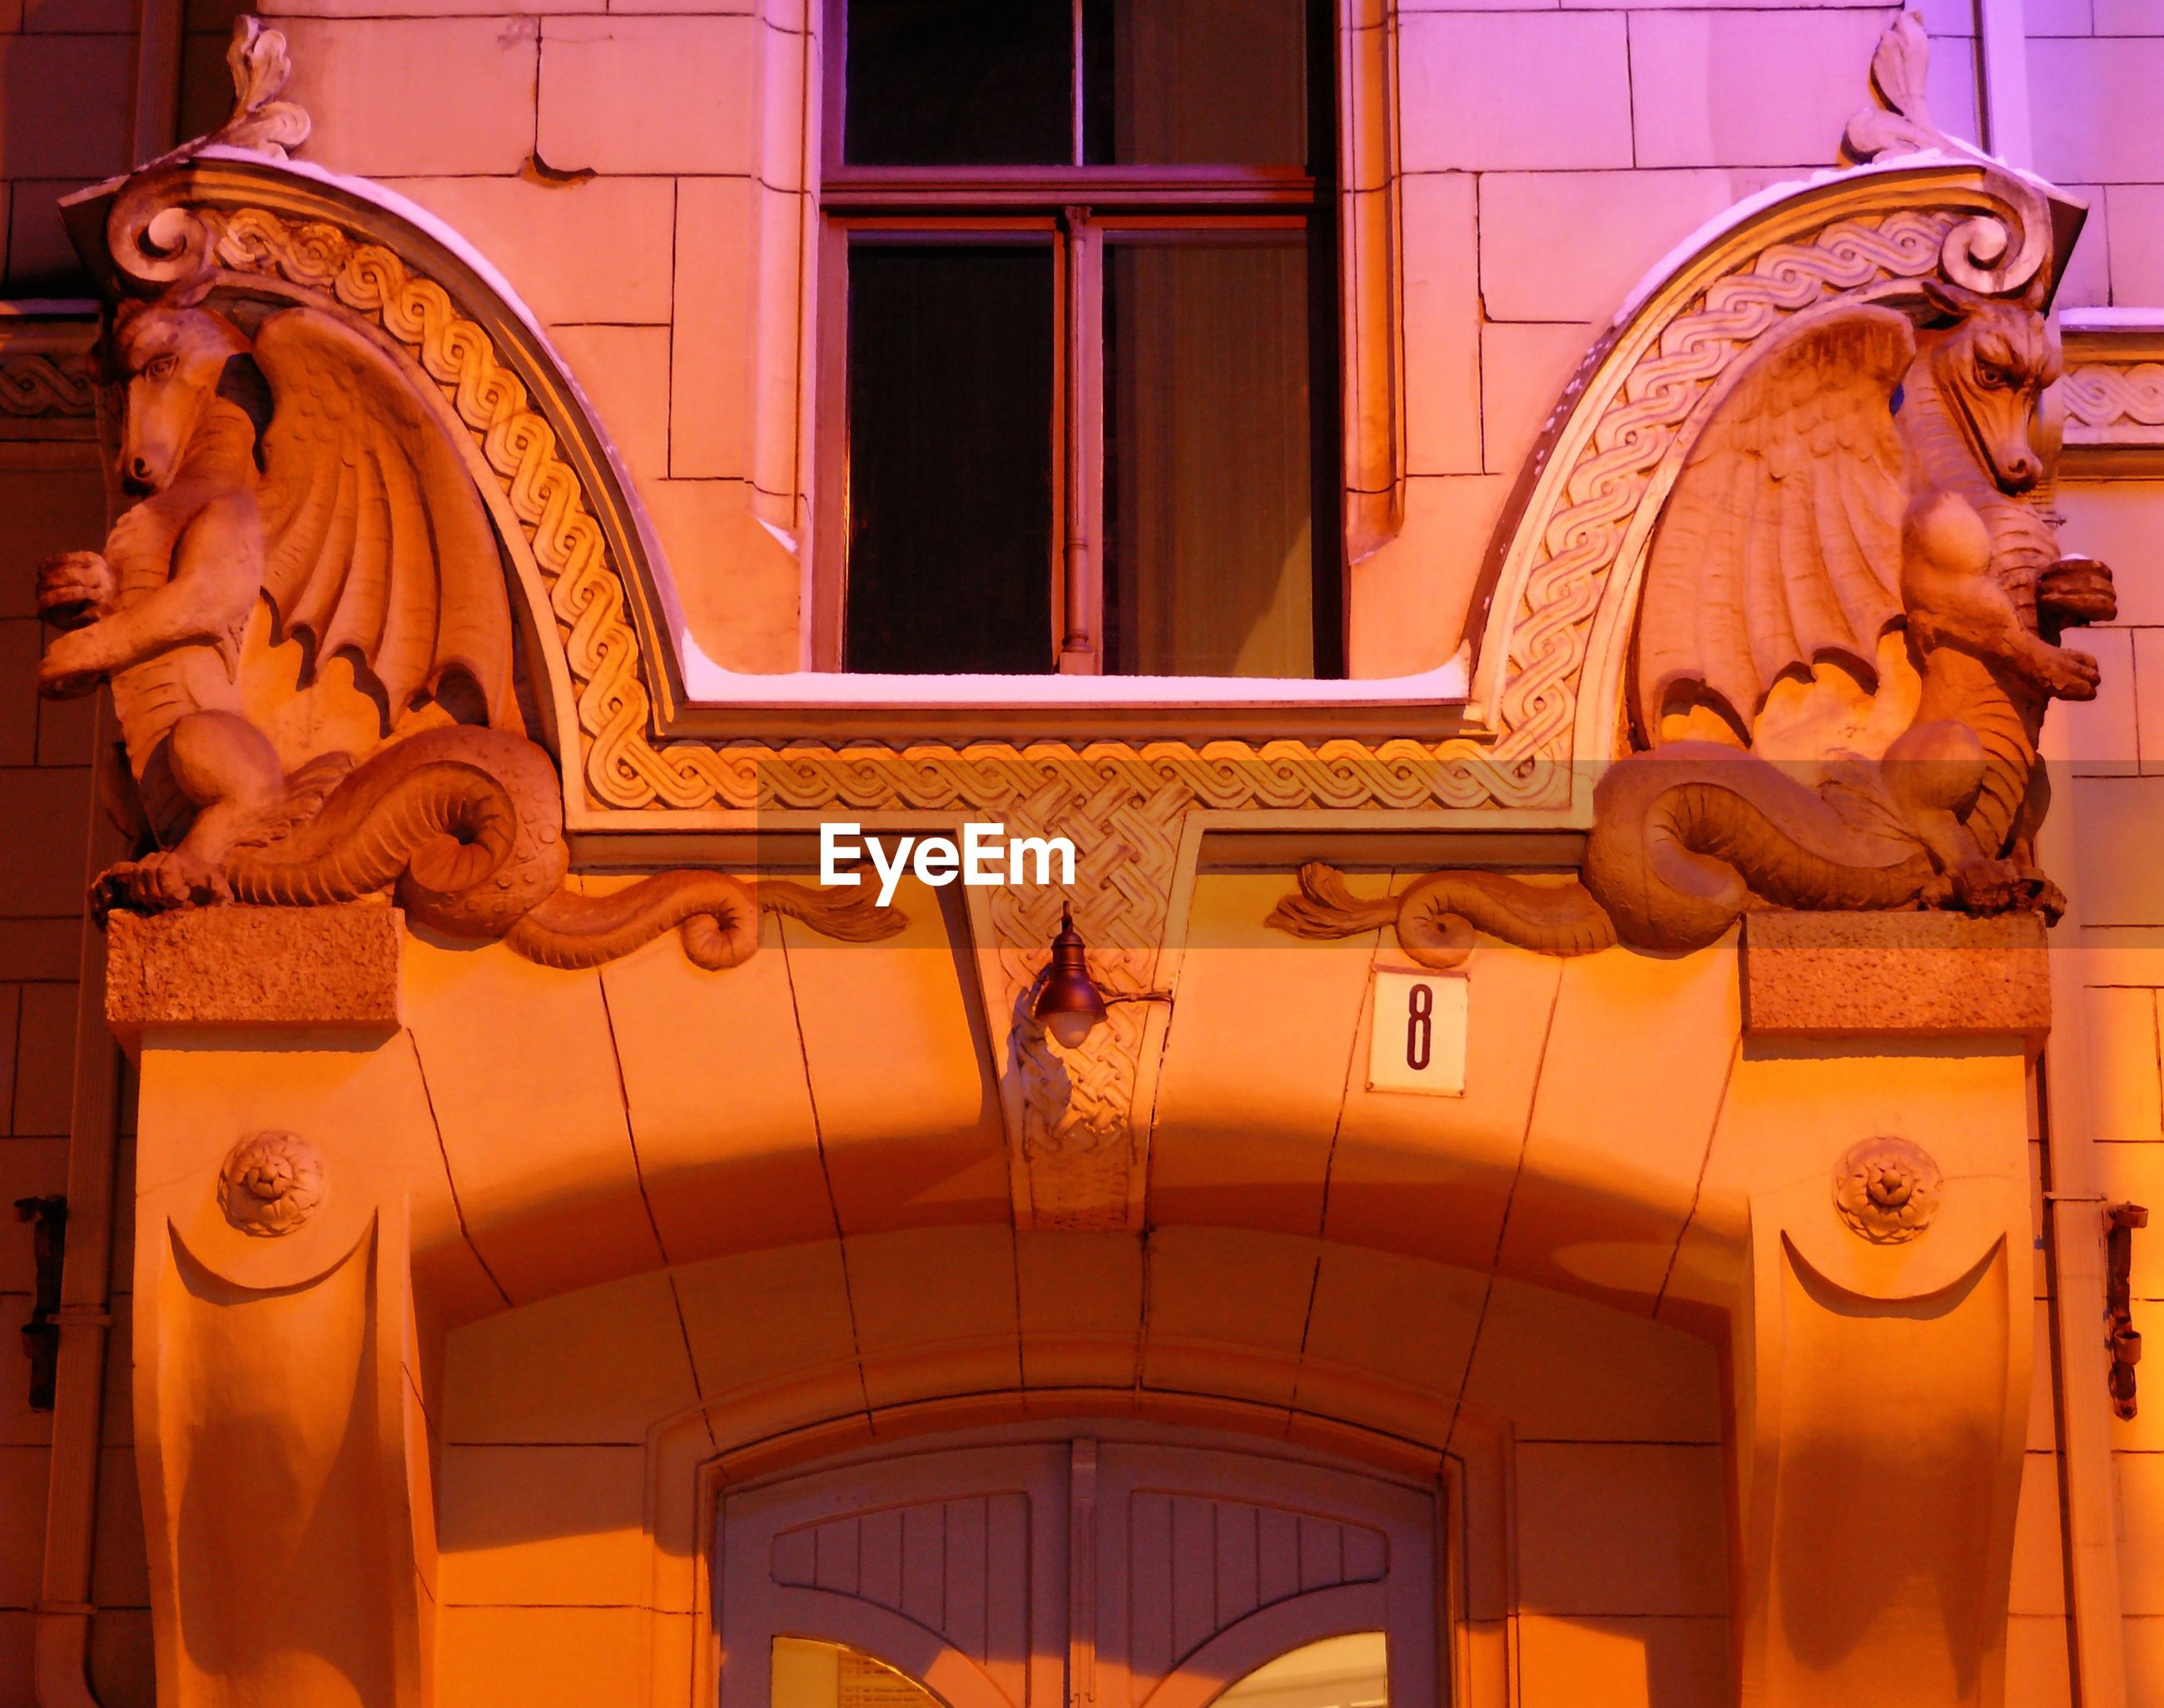 Carvings on building at night